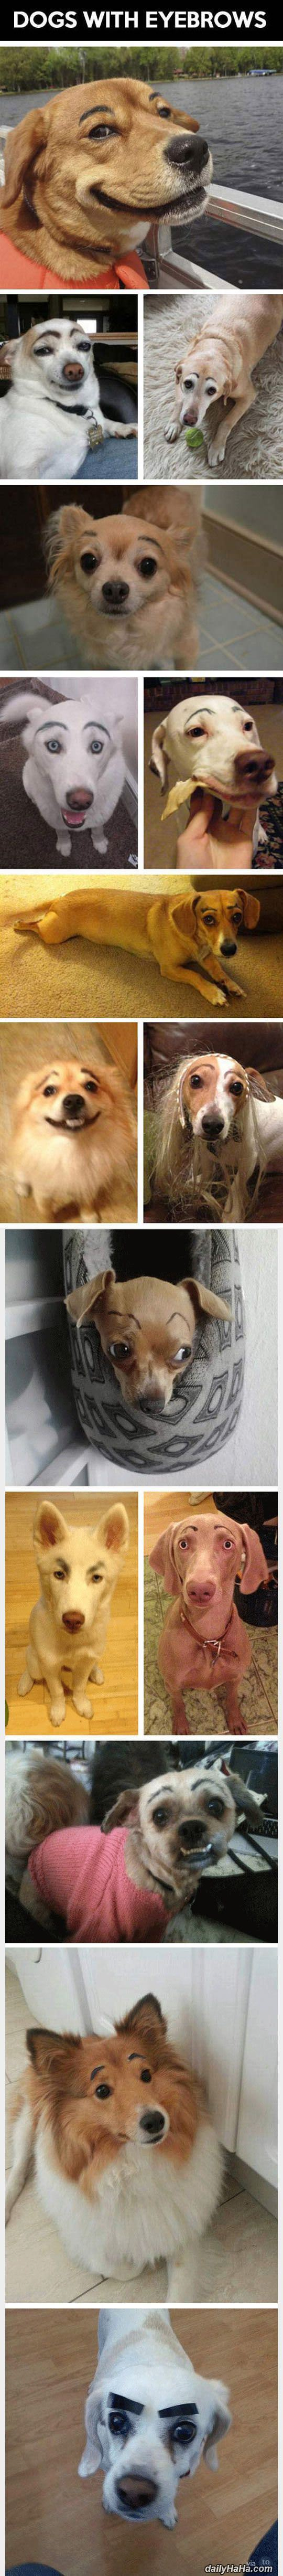 dogs with eyebrows funny picture